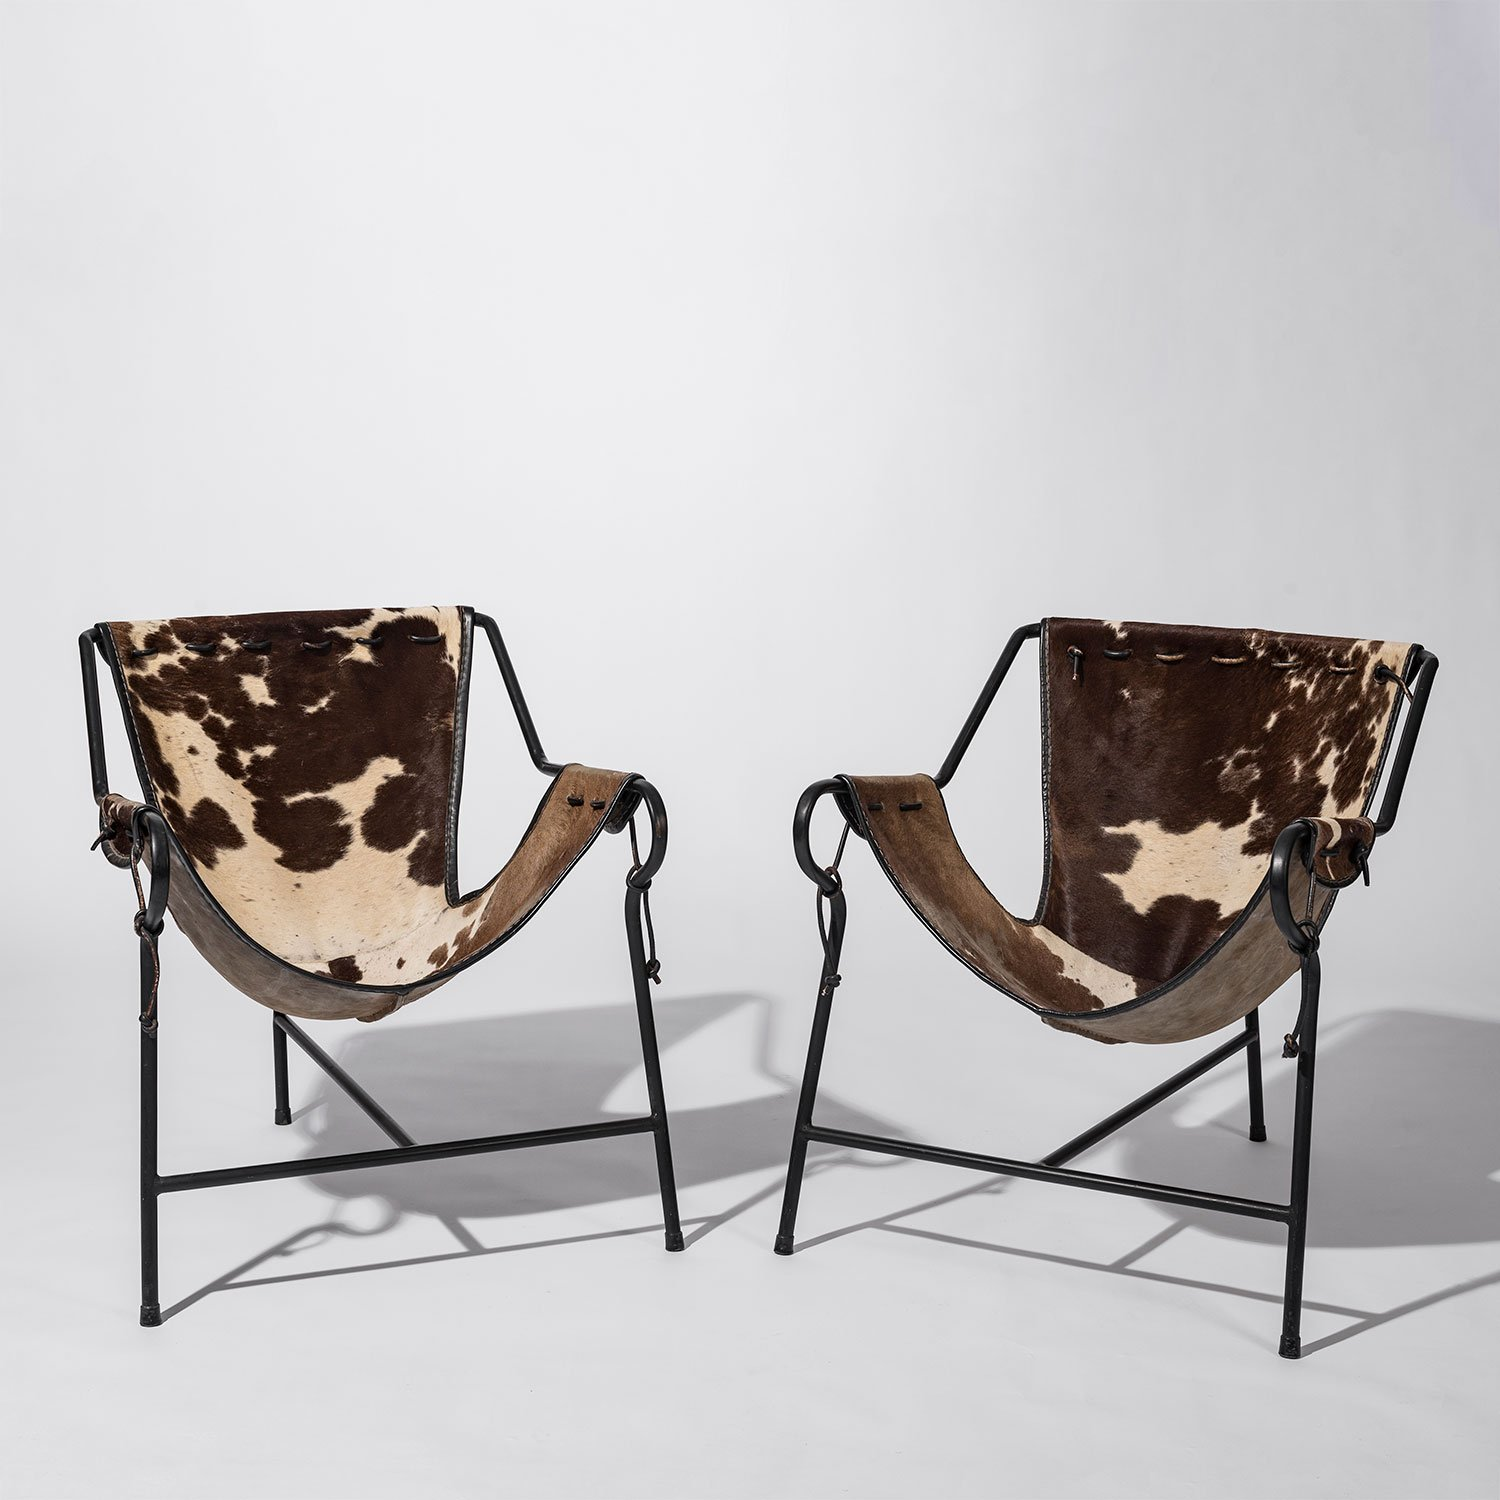 Lina Bo Bardi |                                  Tripod chair